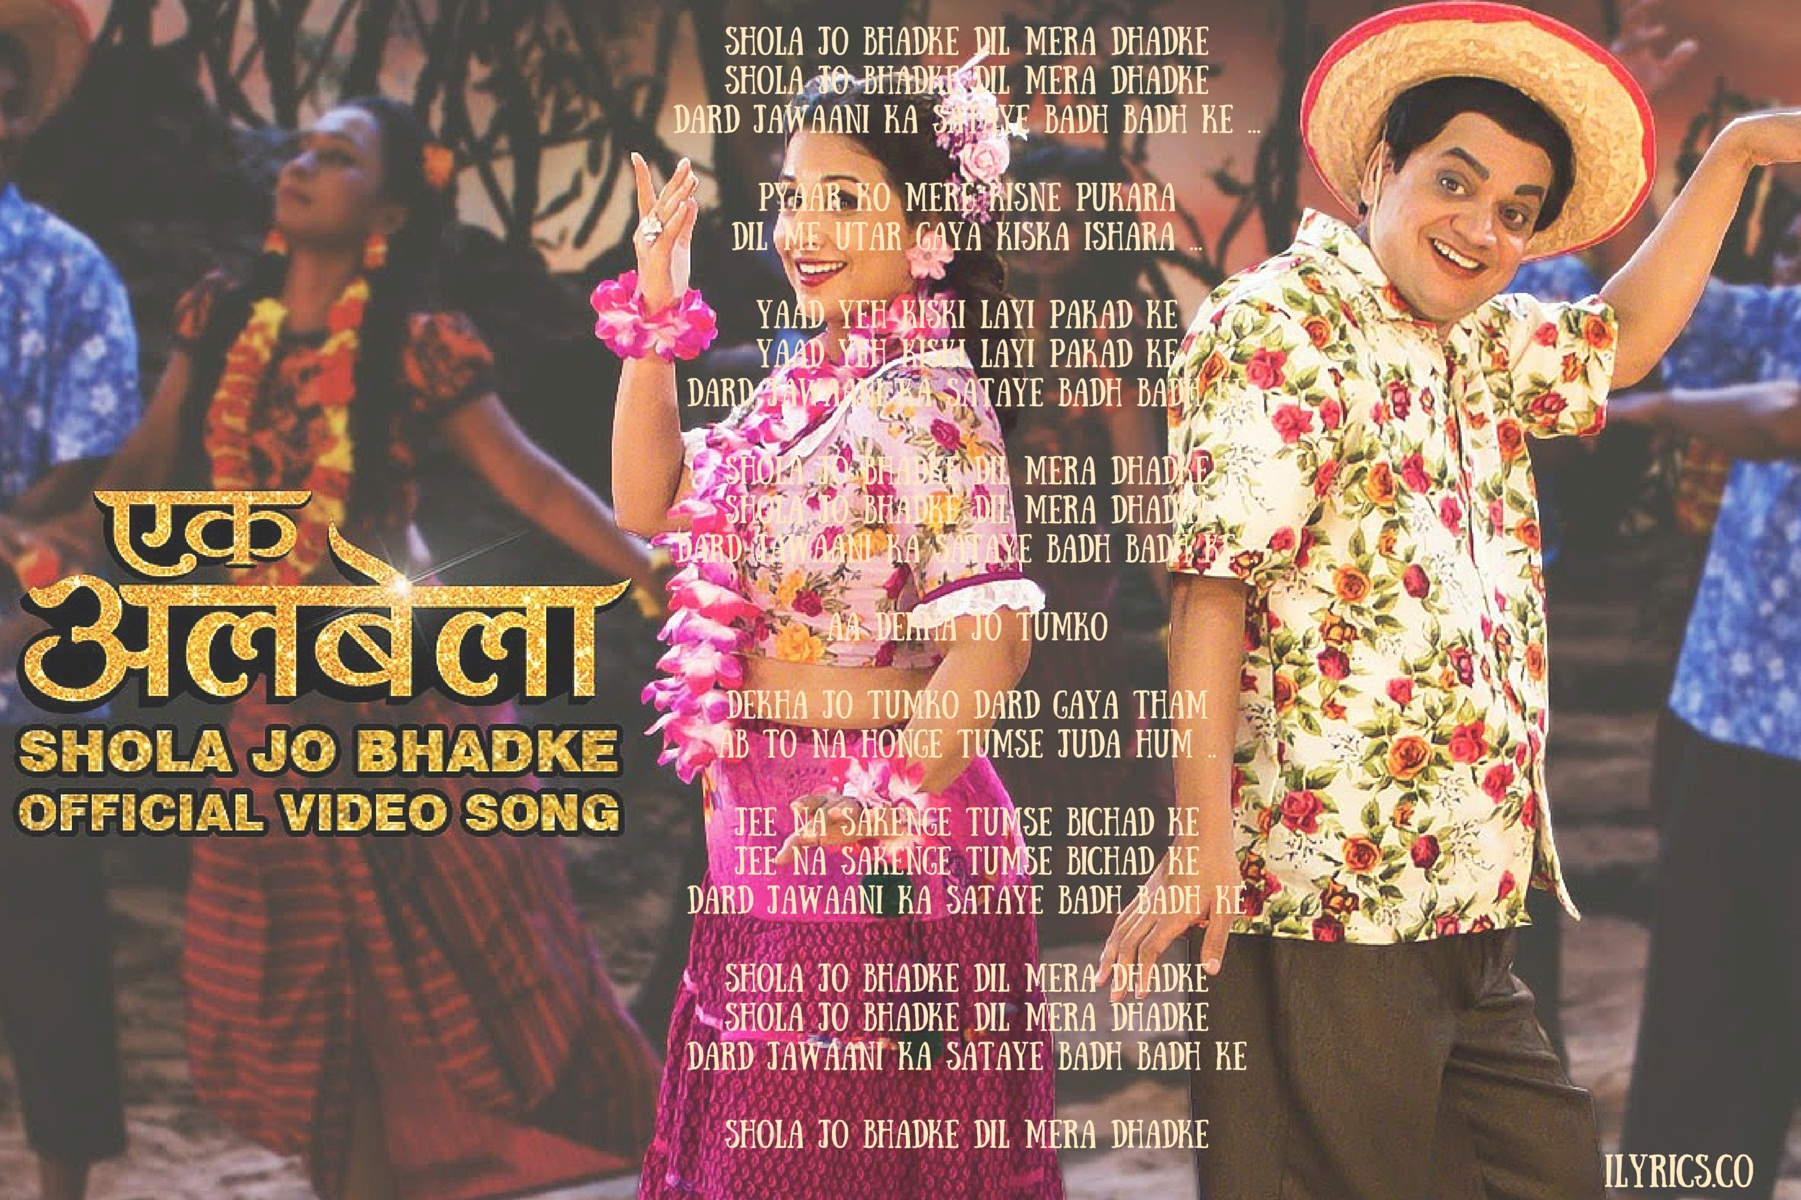 Shola Jo Bhadke Lyrics